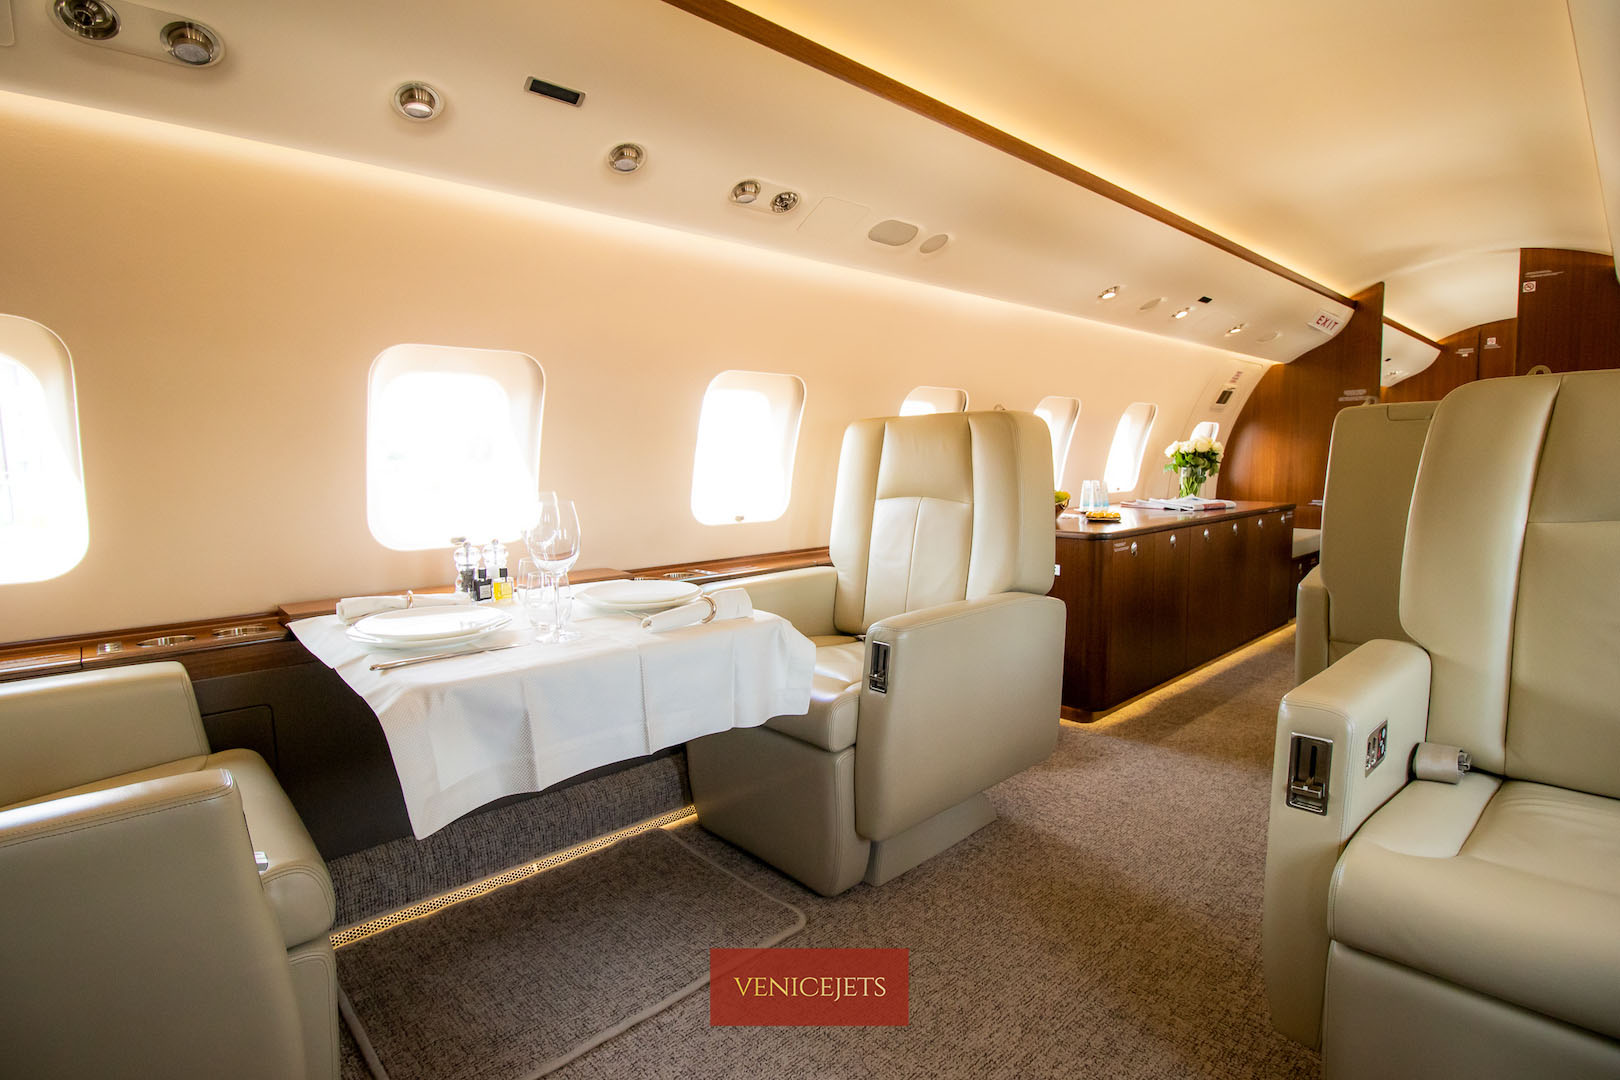 Global 6000 main cabin